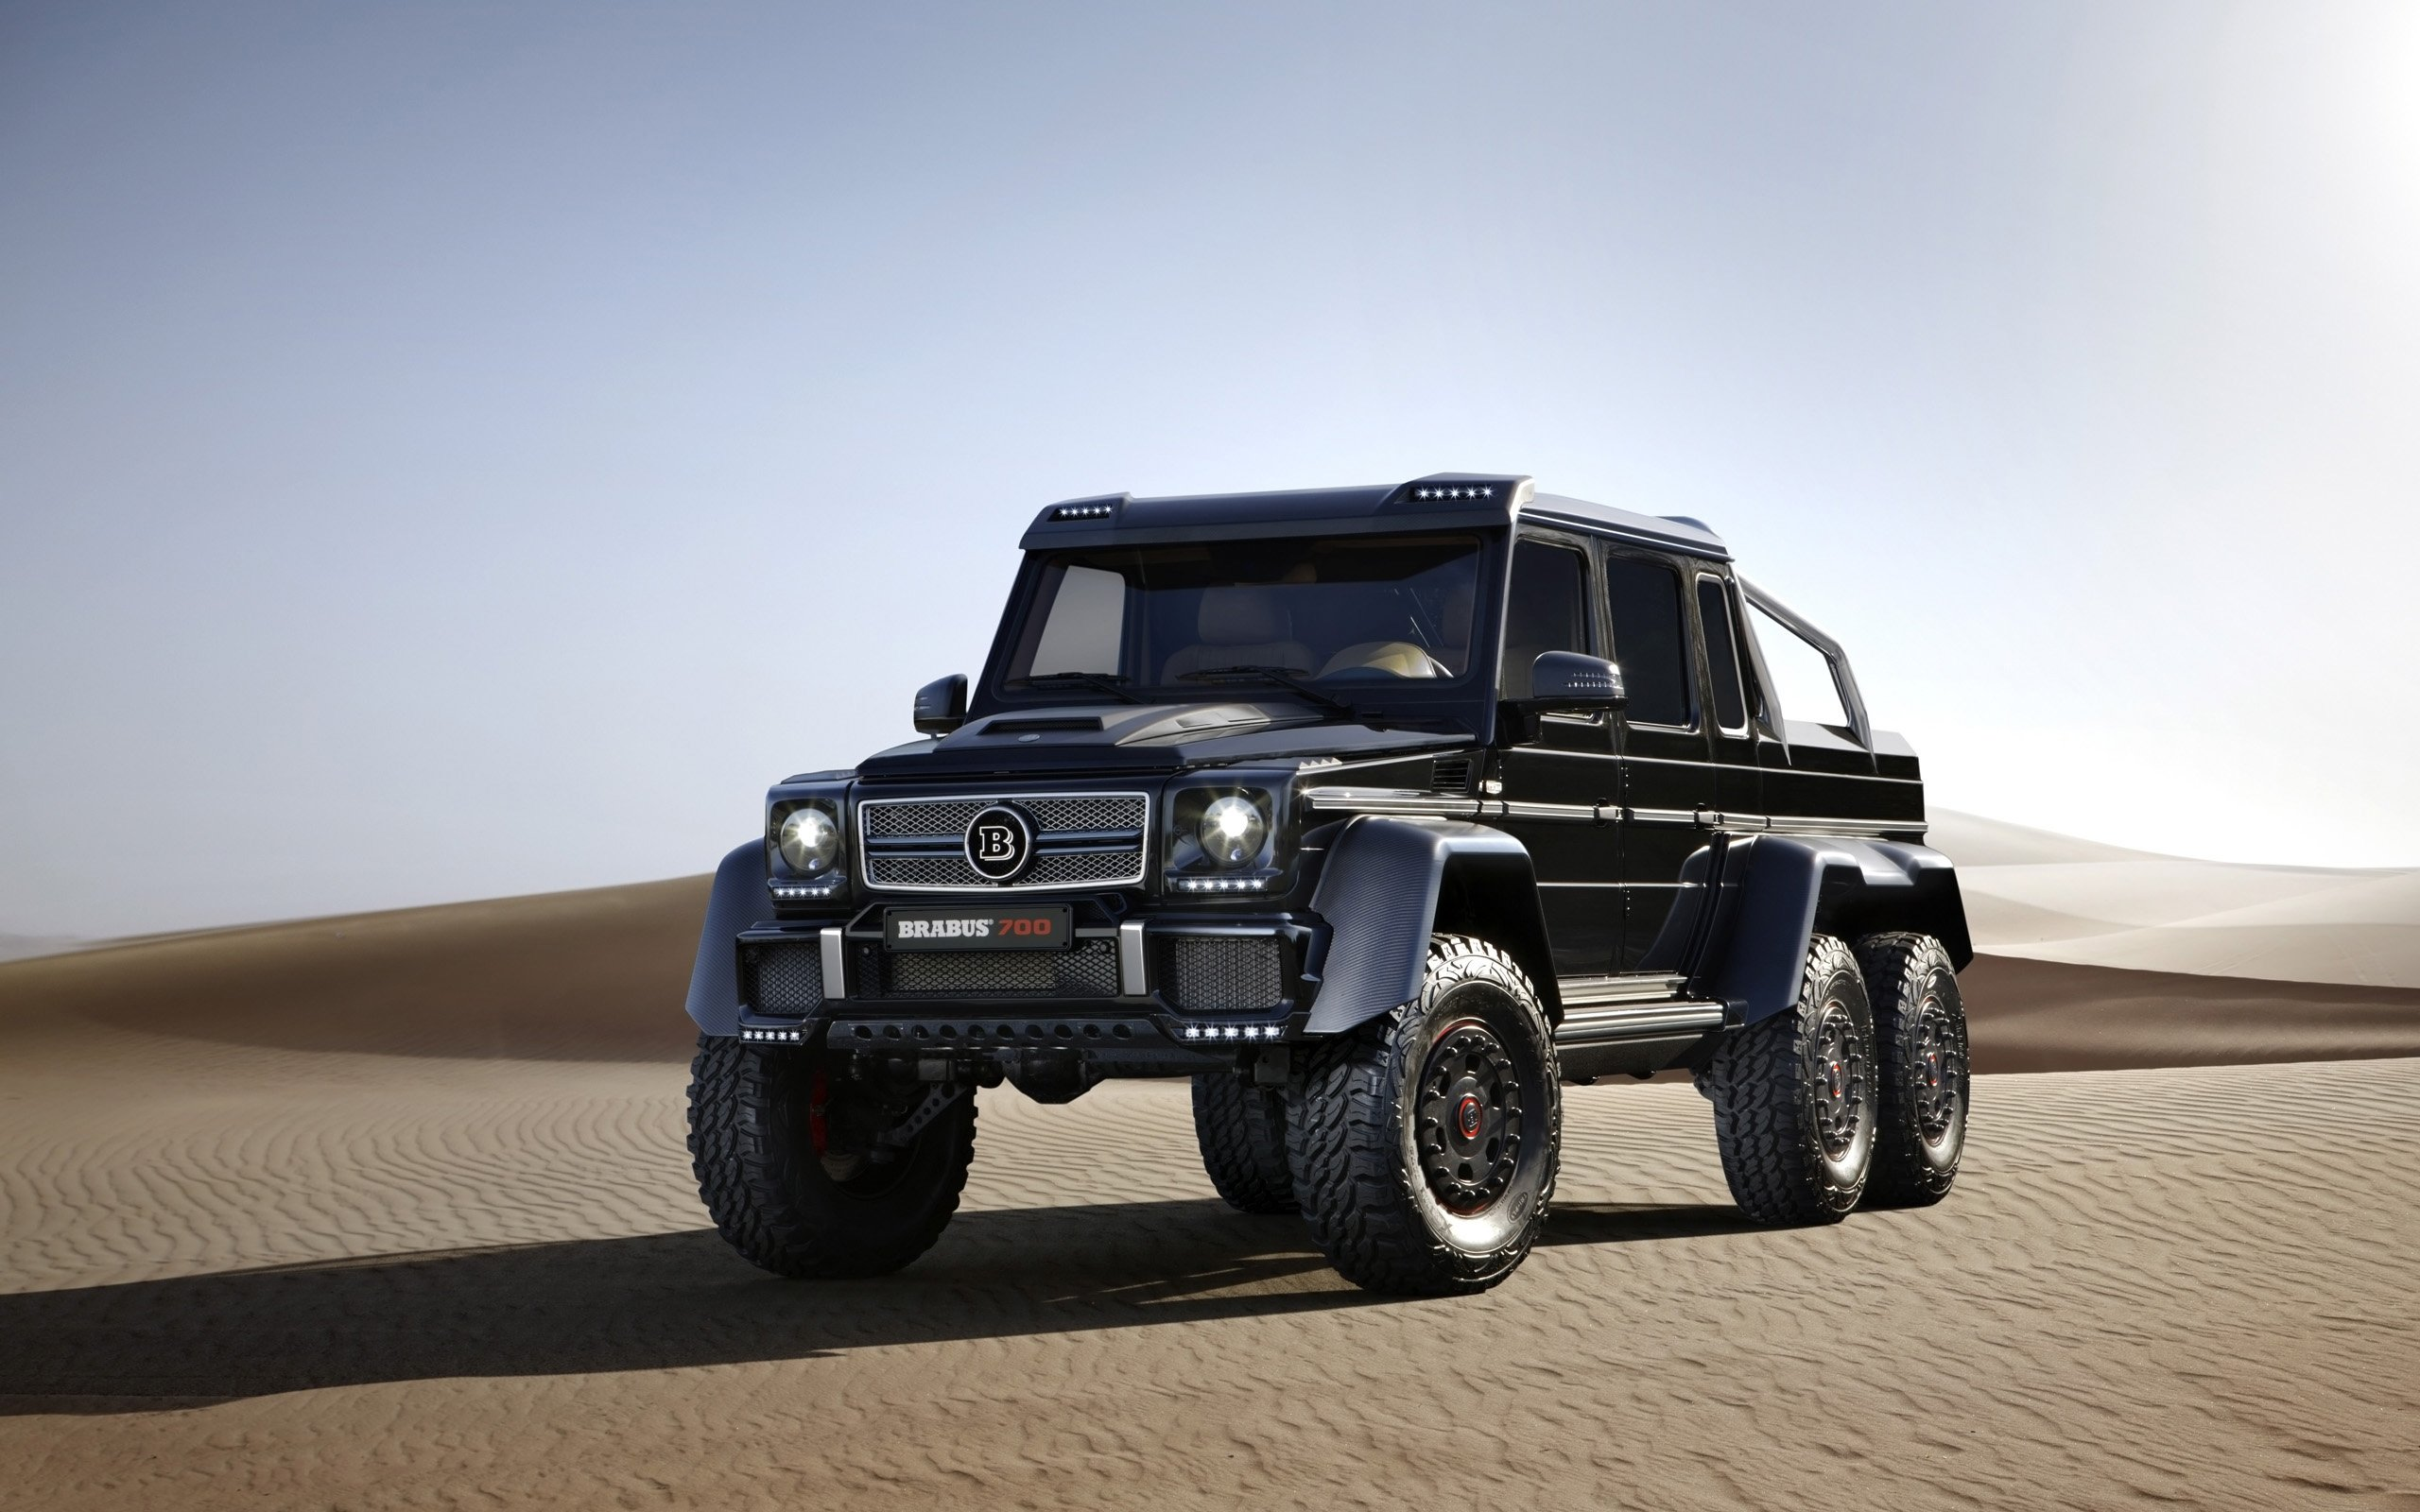 Mercedes 6X6 For Sale >> 2014 Brabus Mercedes Benz B63S 700 6x6 pickup suv tuning offroad g wallpaper | 2560x1600 ...